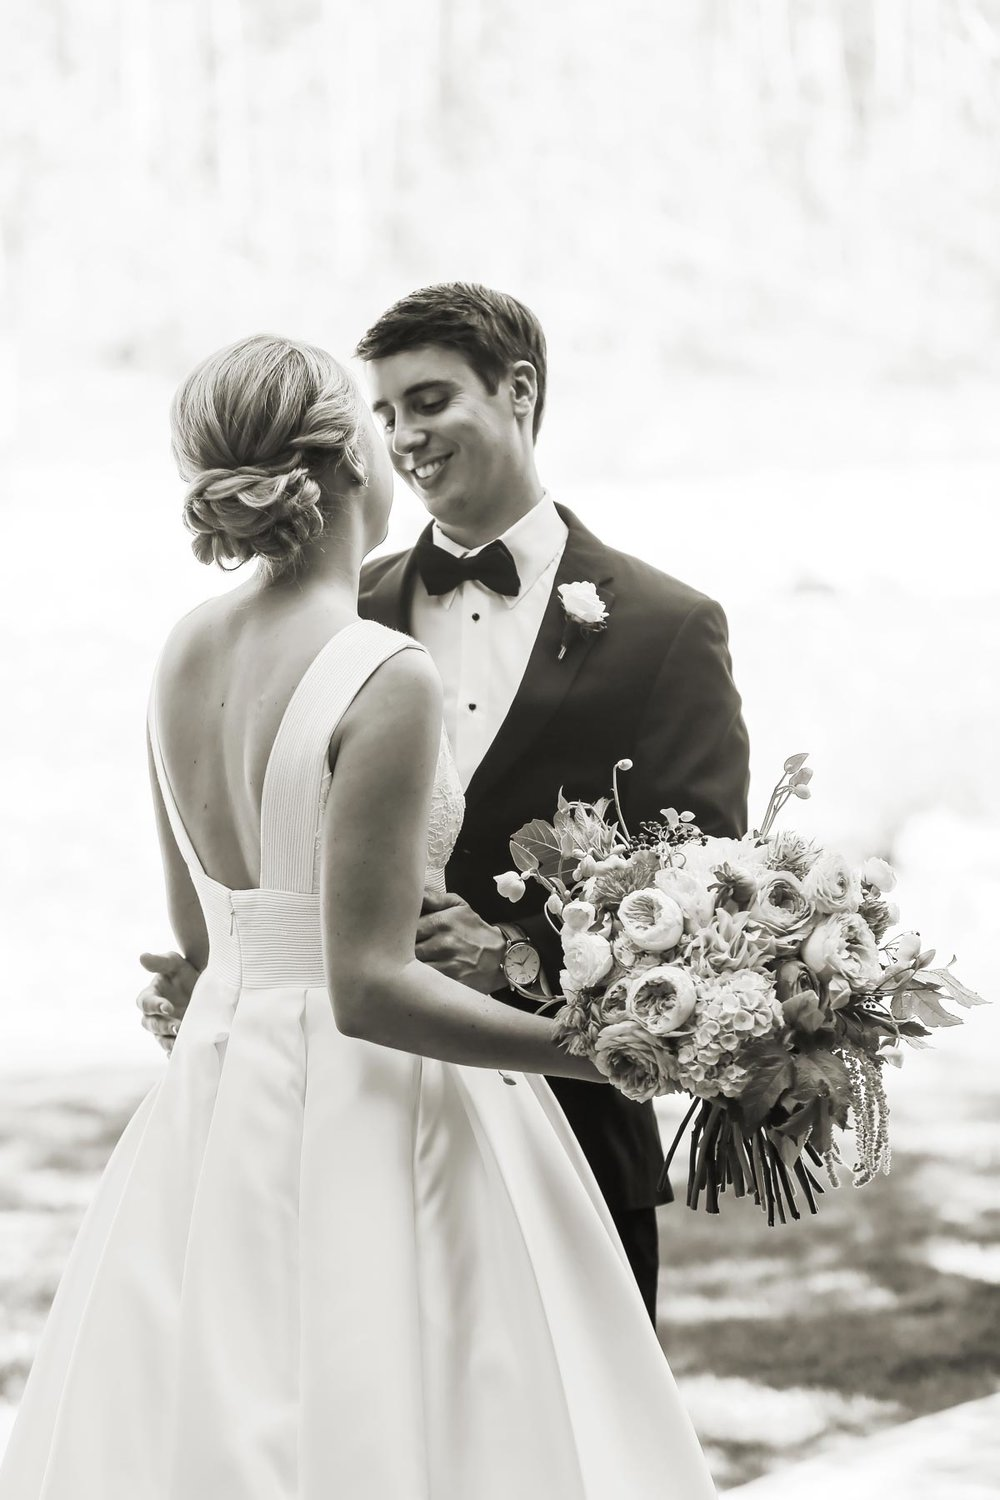 bride-and-groom-first-look-deer-valley-weddings-pepper-nix-photography.jpg